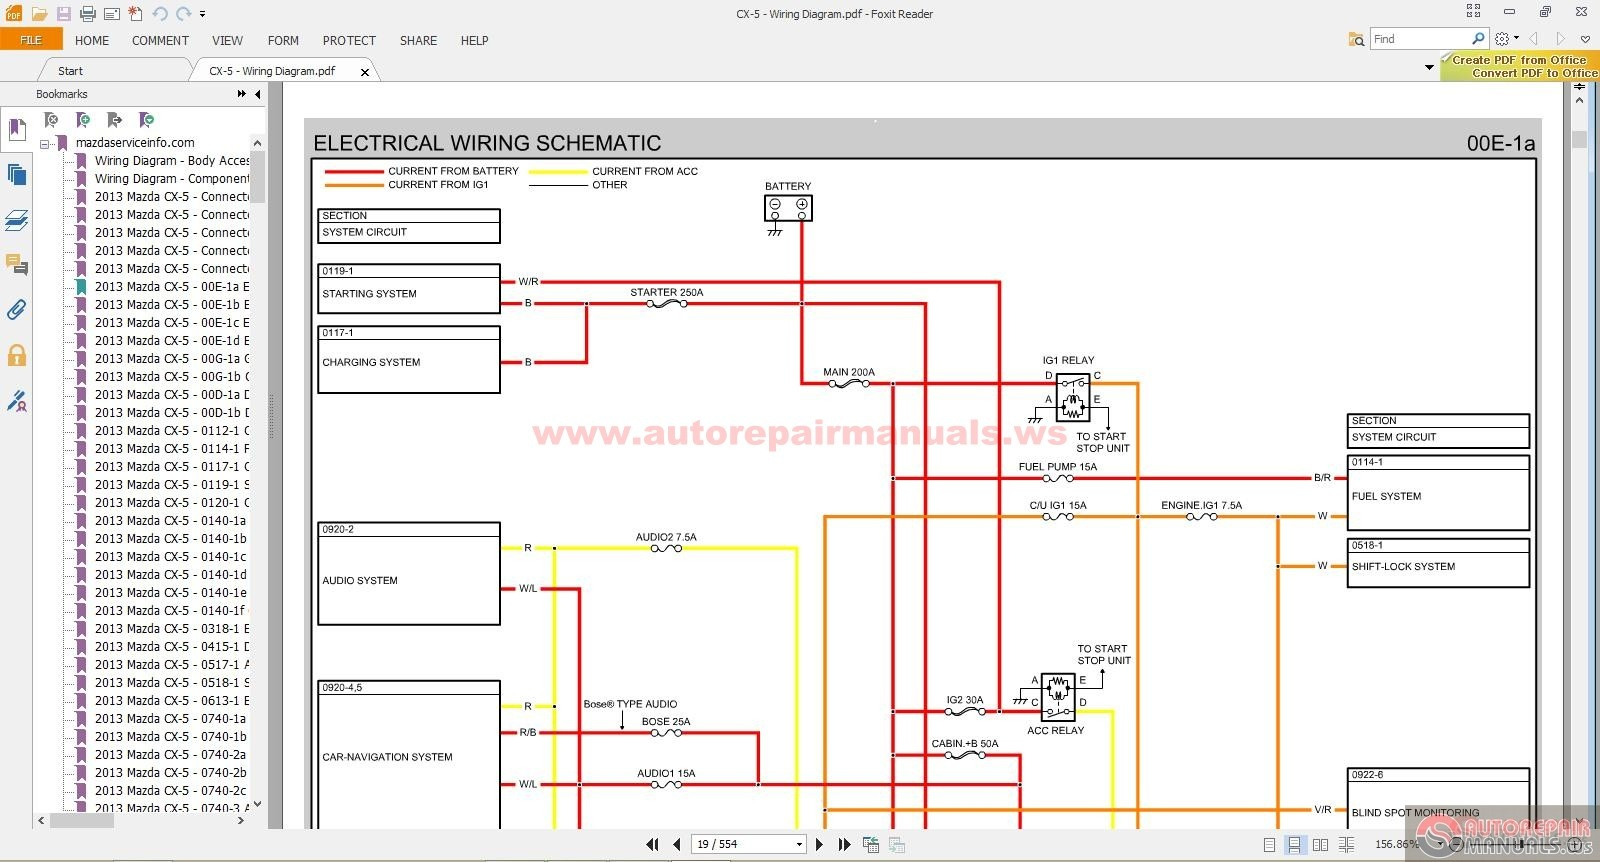 Hino 268 Fuse Box Diagram 25 Wiring Images M2 Mazda Cx 5 2013 Workshop Manual5 Diagrams On Free Download